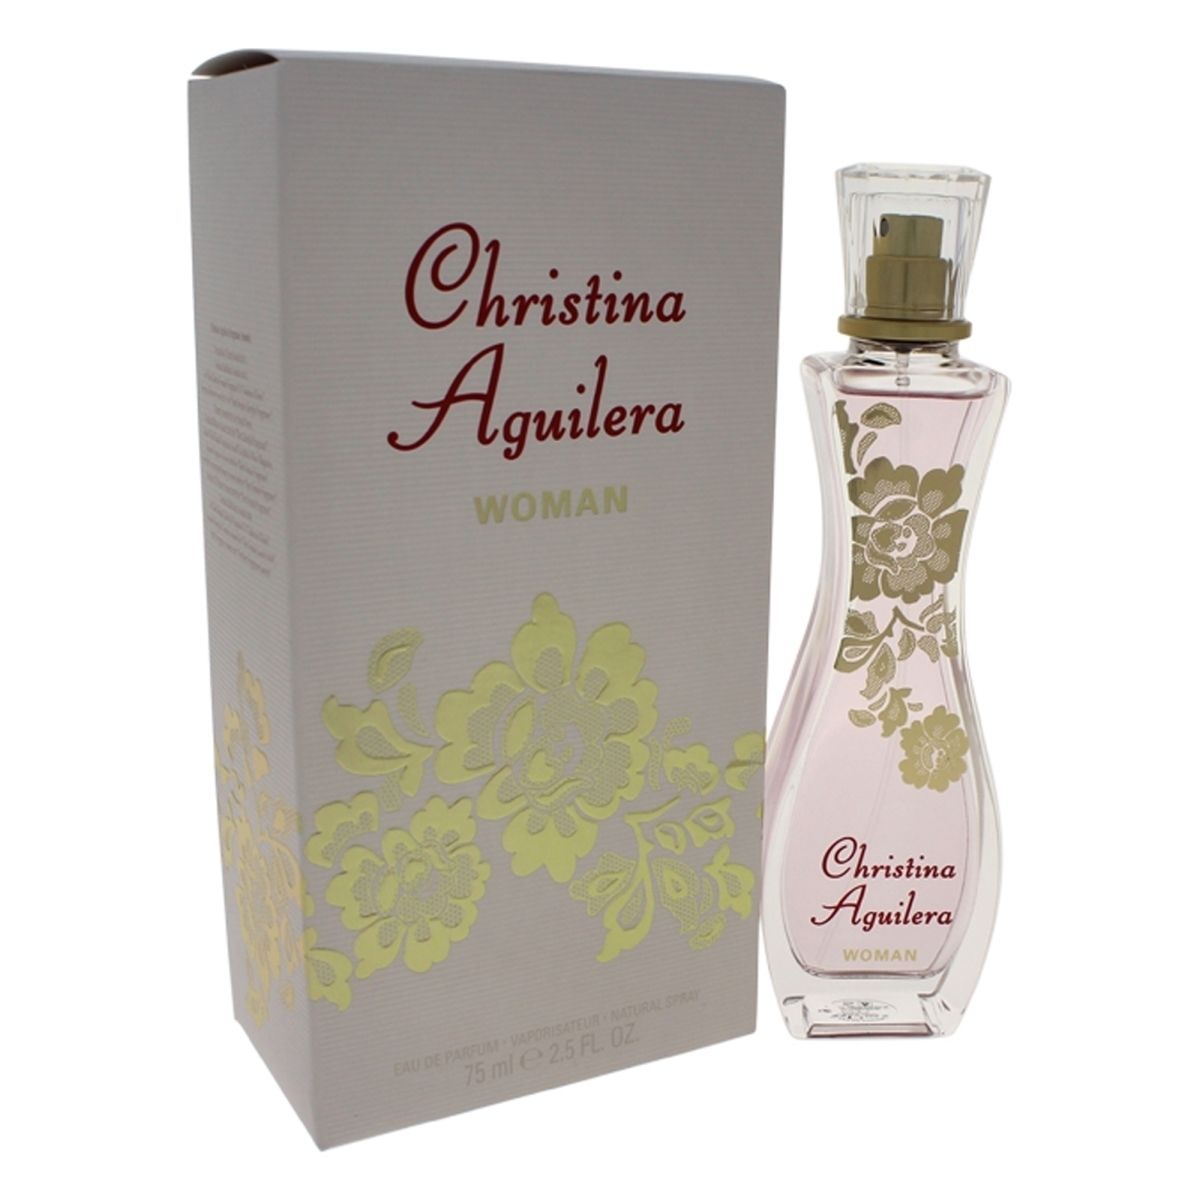 Christina Aguilera W-8874 2.5 oz Christina Aguilera EDP Spray for Women набор лаков для ногтей christina fitzgerald christina fitzgerald ch007lwftt06